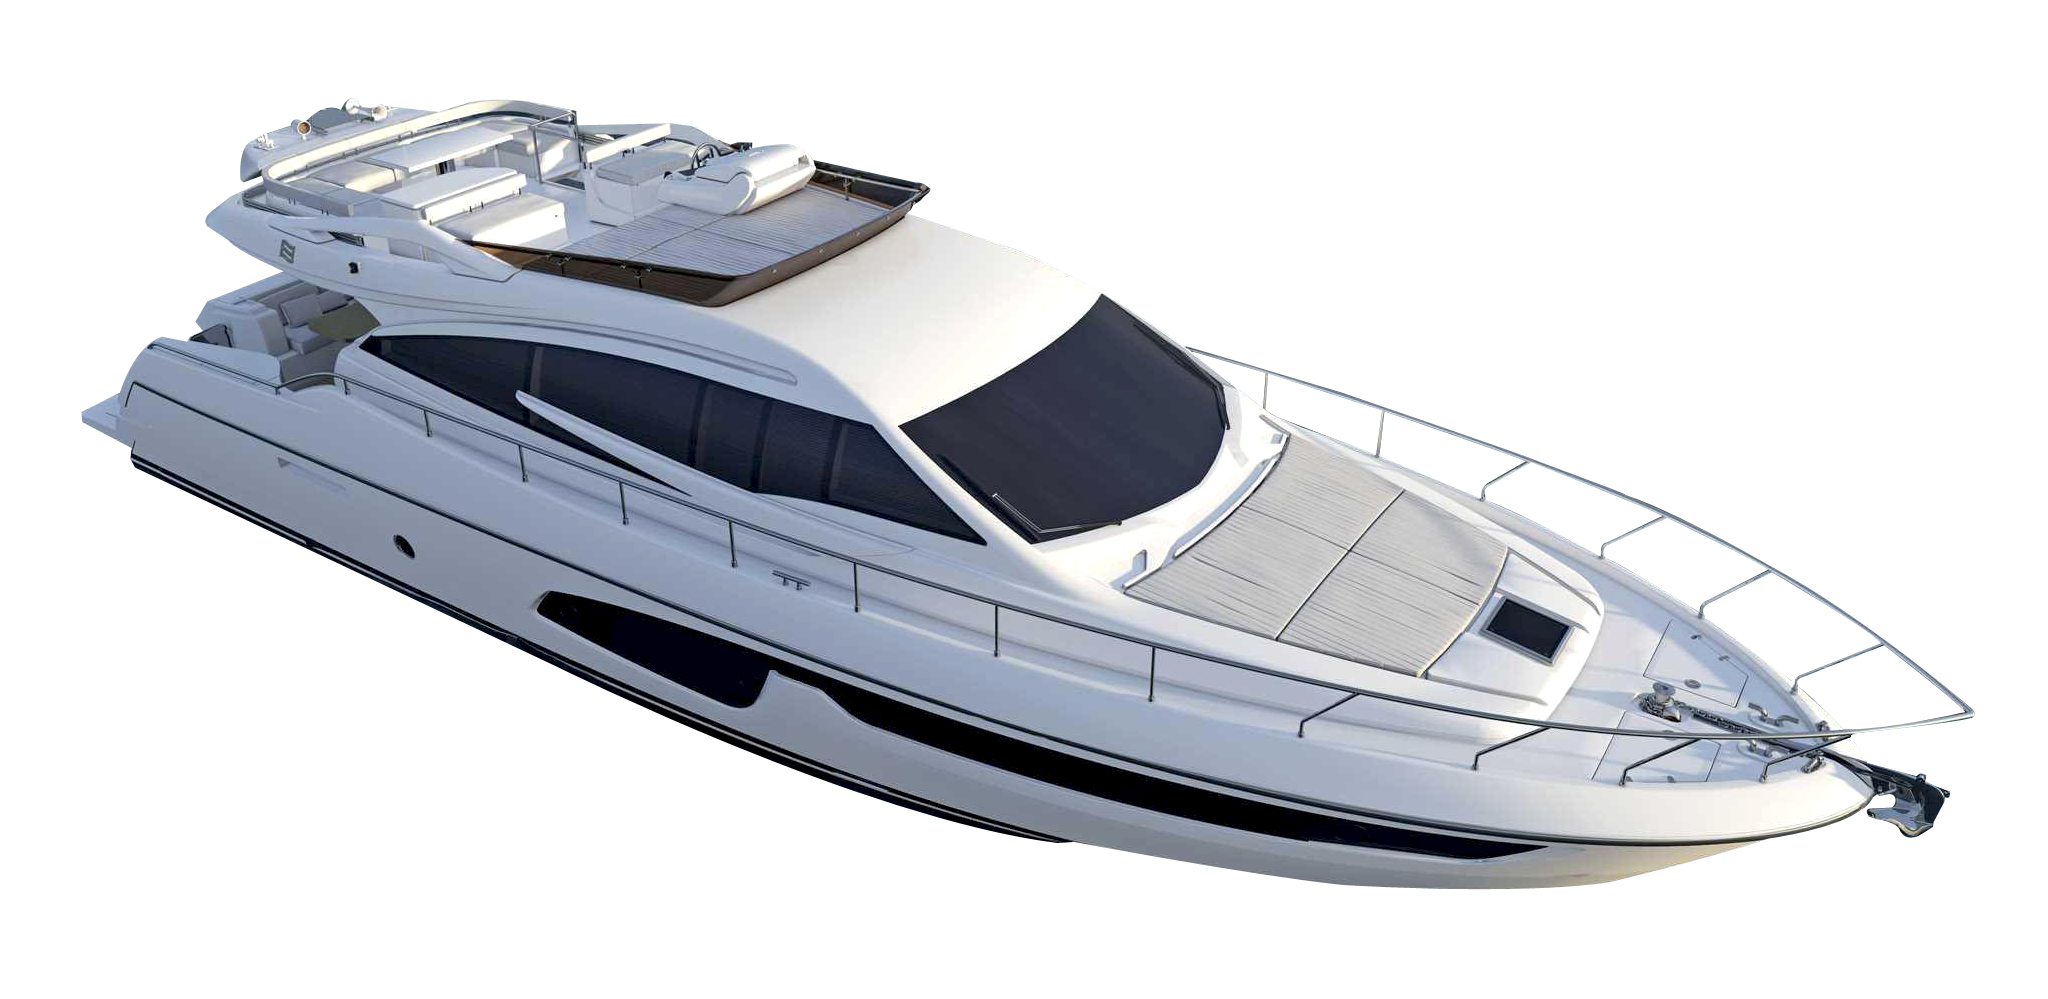 Yacht png. Boat image purepng free